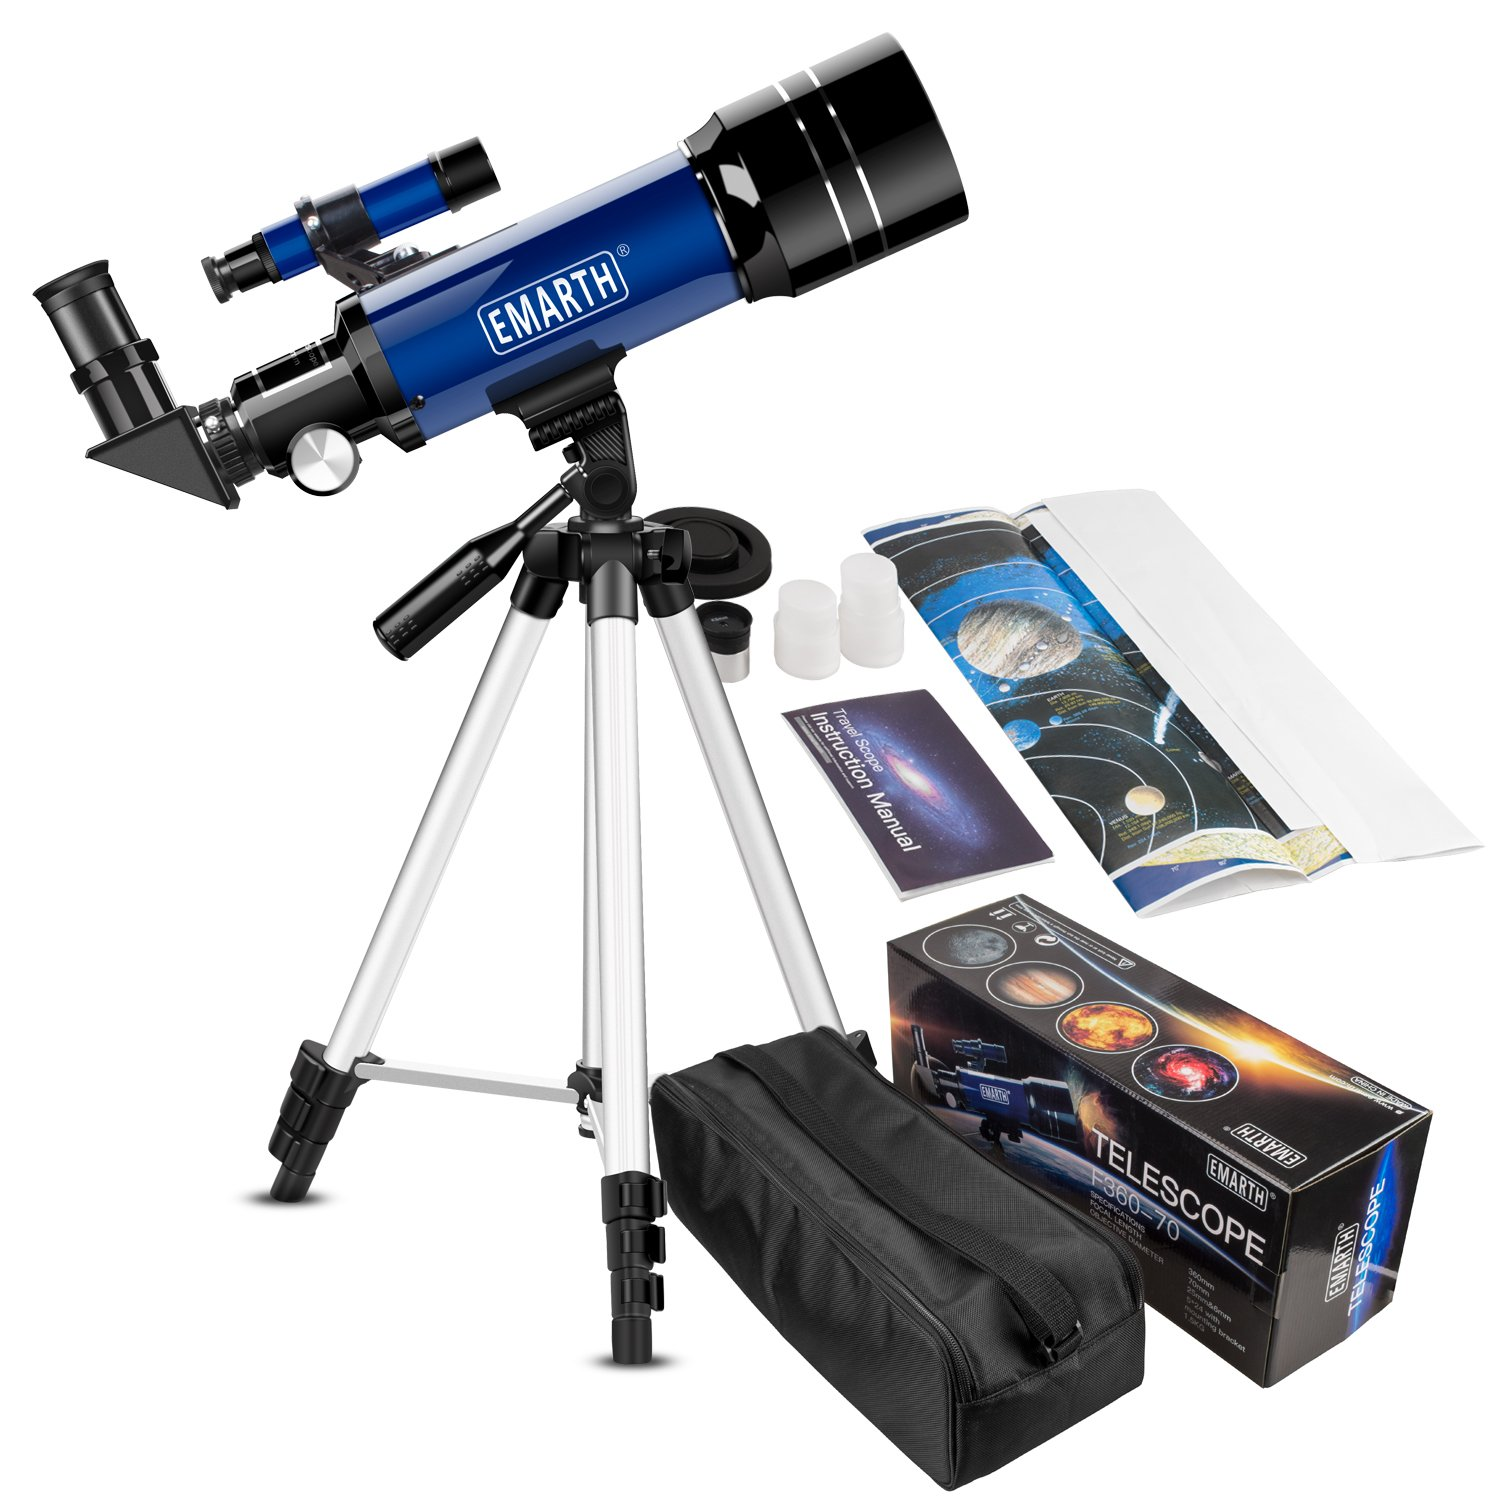 CSSEA 70mm Telescope for Kids and Astronomy Beginners, Travel Scope with Adjustable Tripod & Finder Scope & Two Eyepieces(K25mm & K10mm)-Perfect for Children Educational and Gift by CSSEA